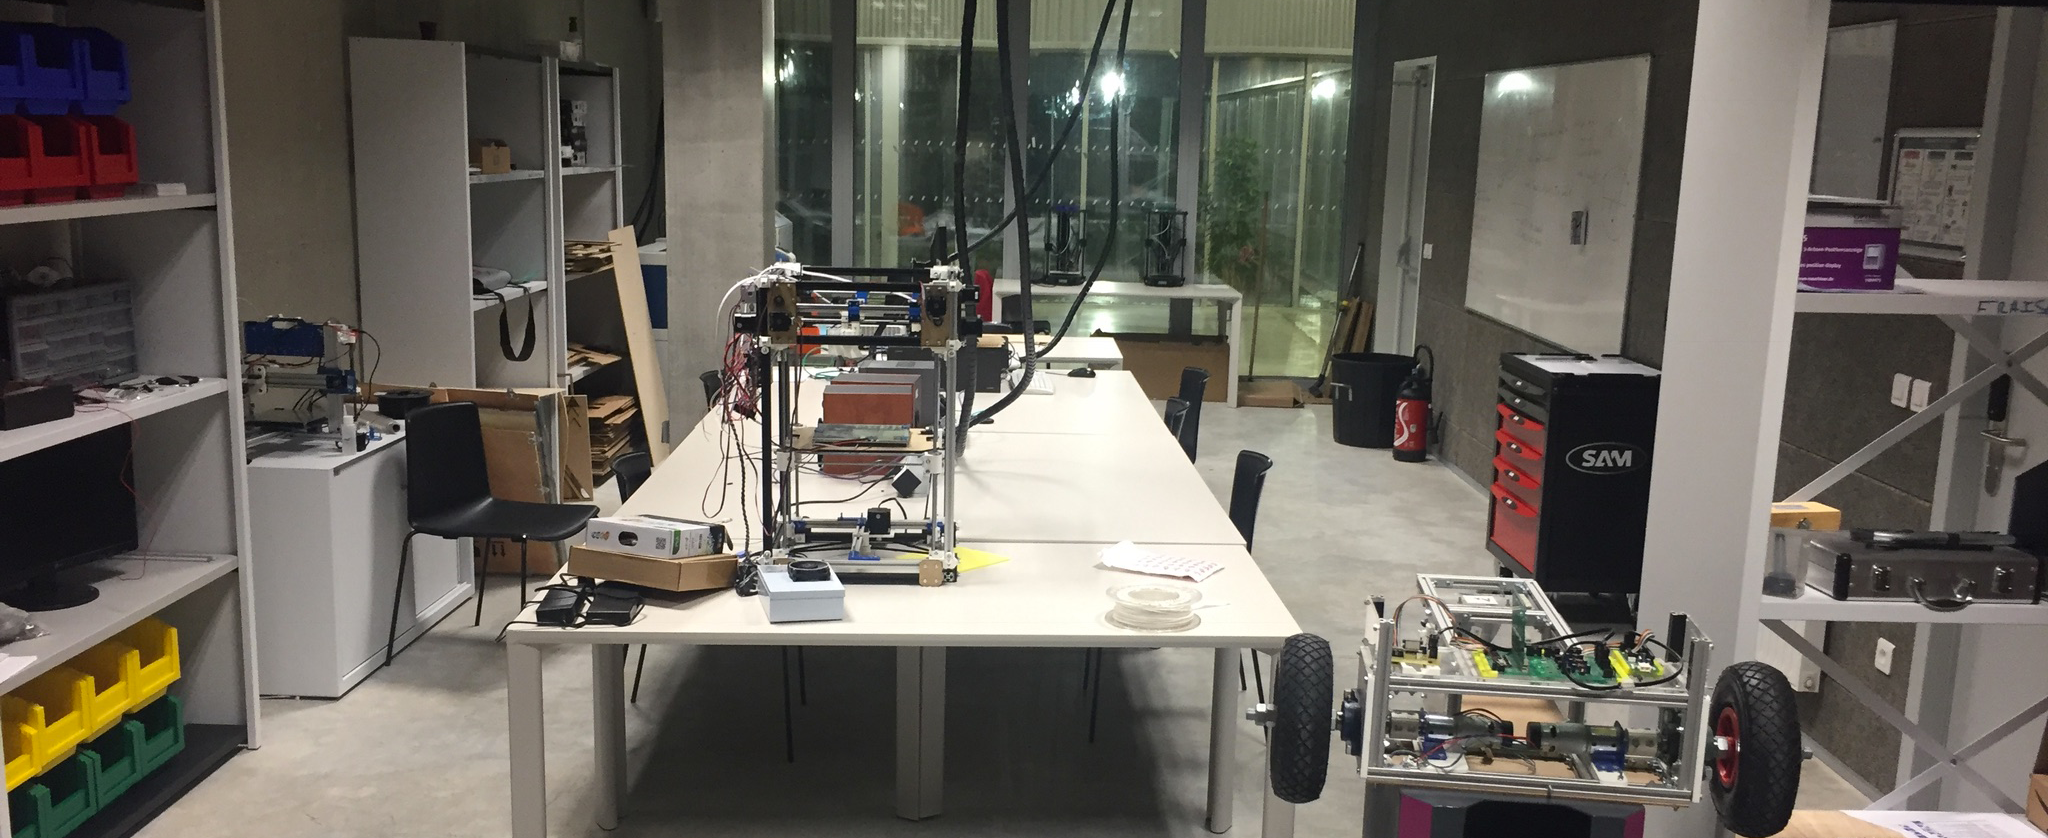 ETOILE FabLab, a prototyping space